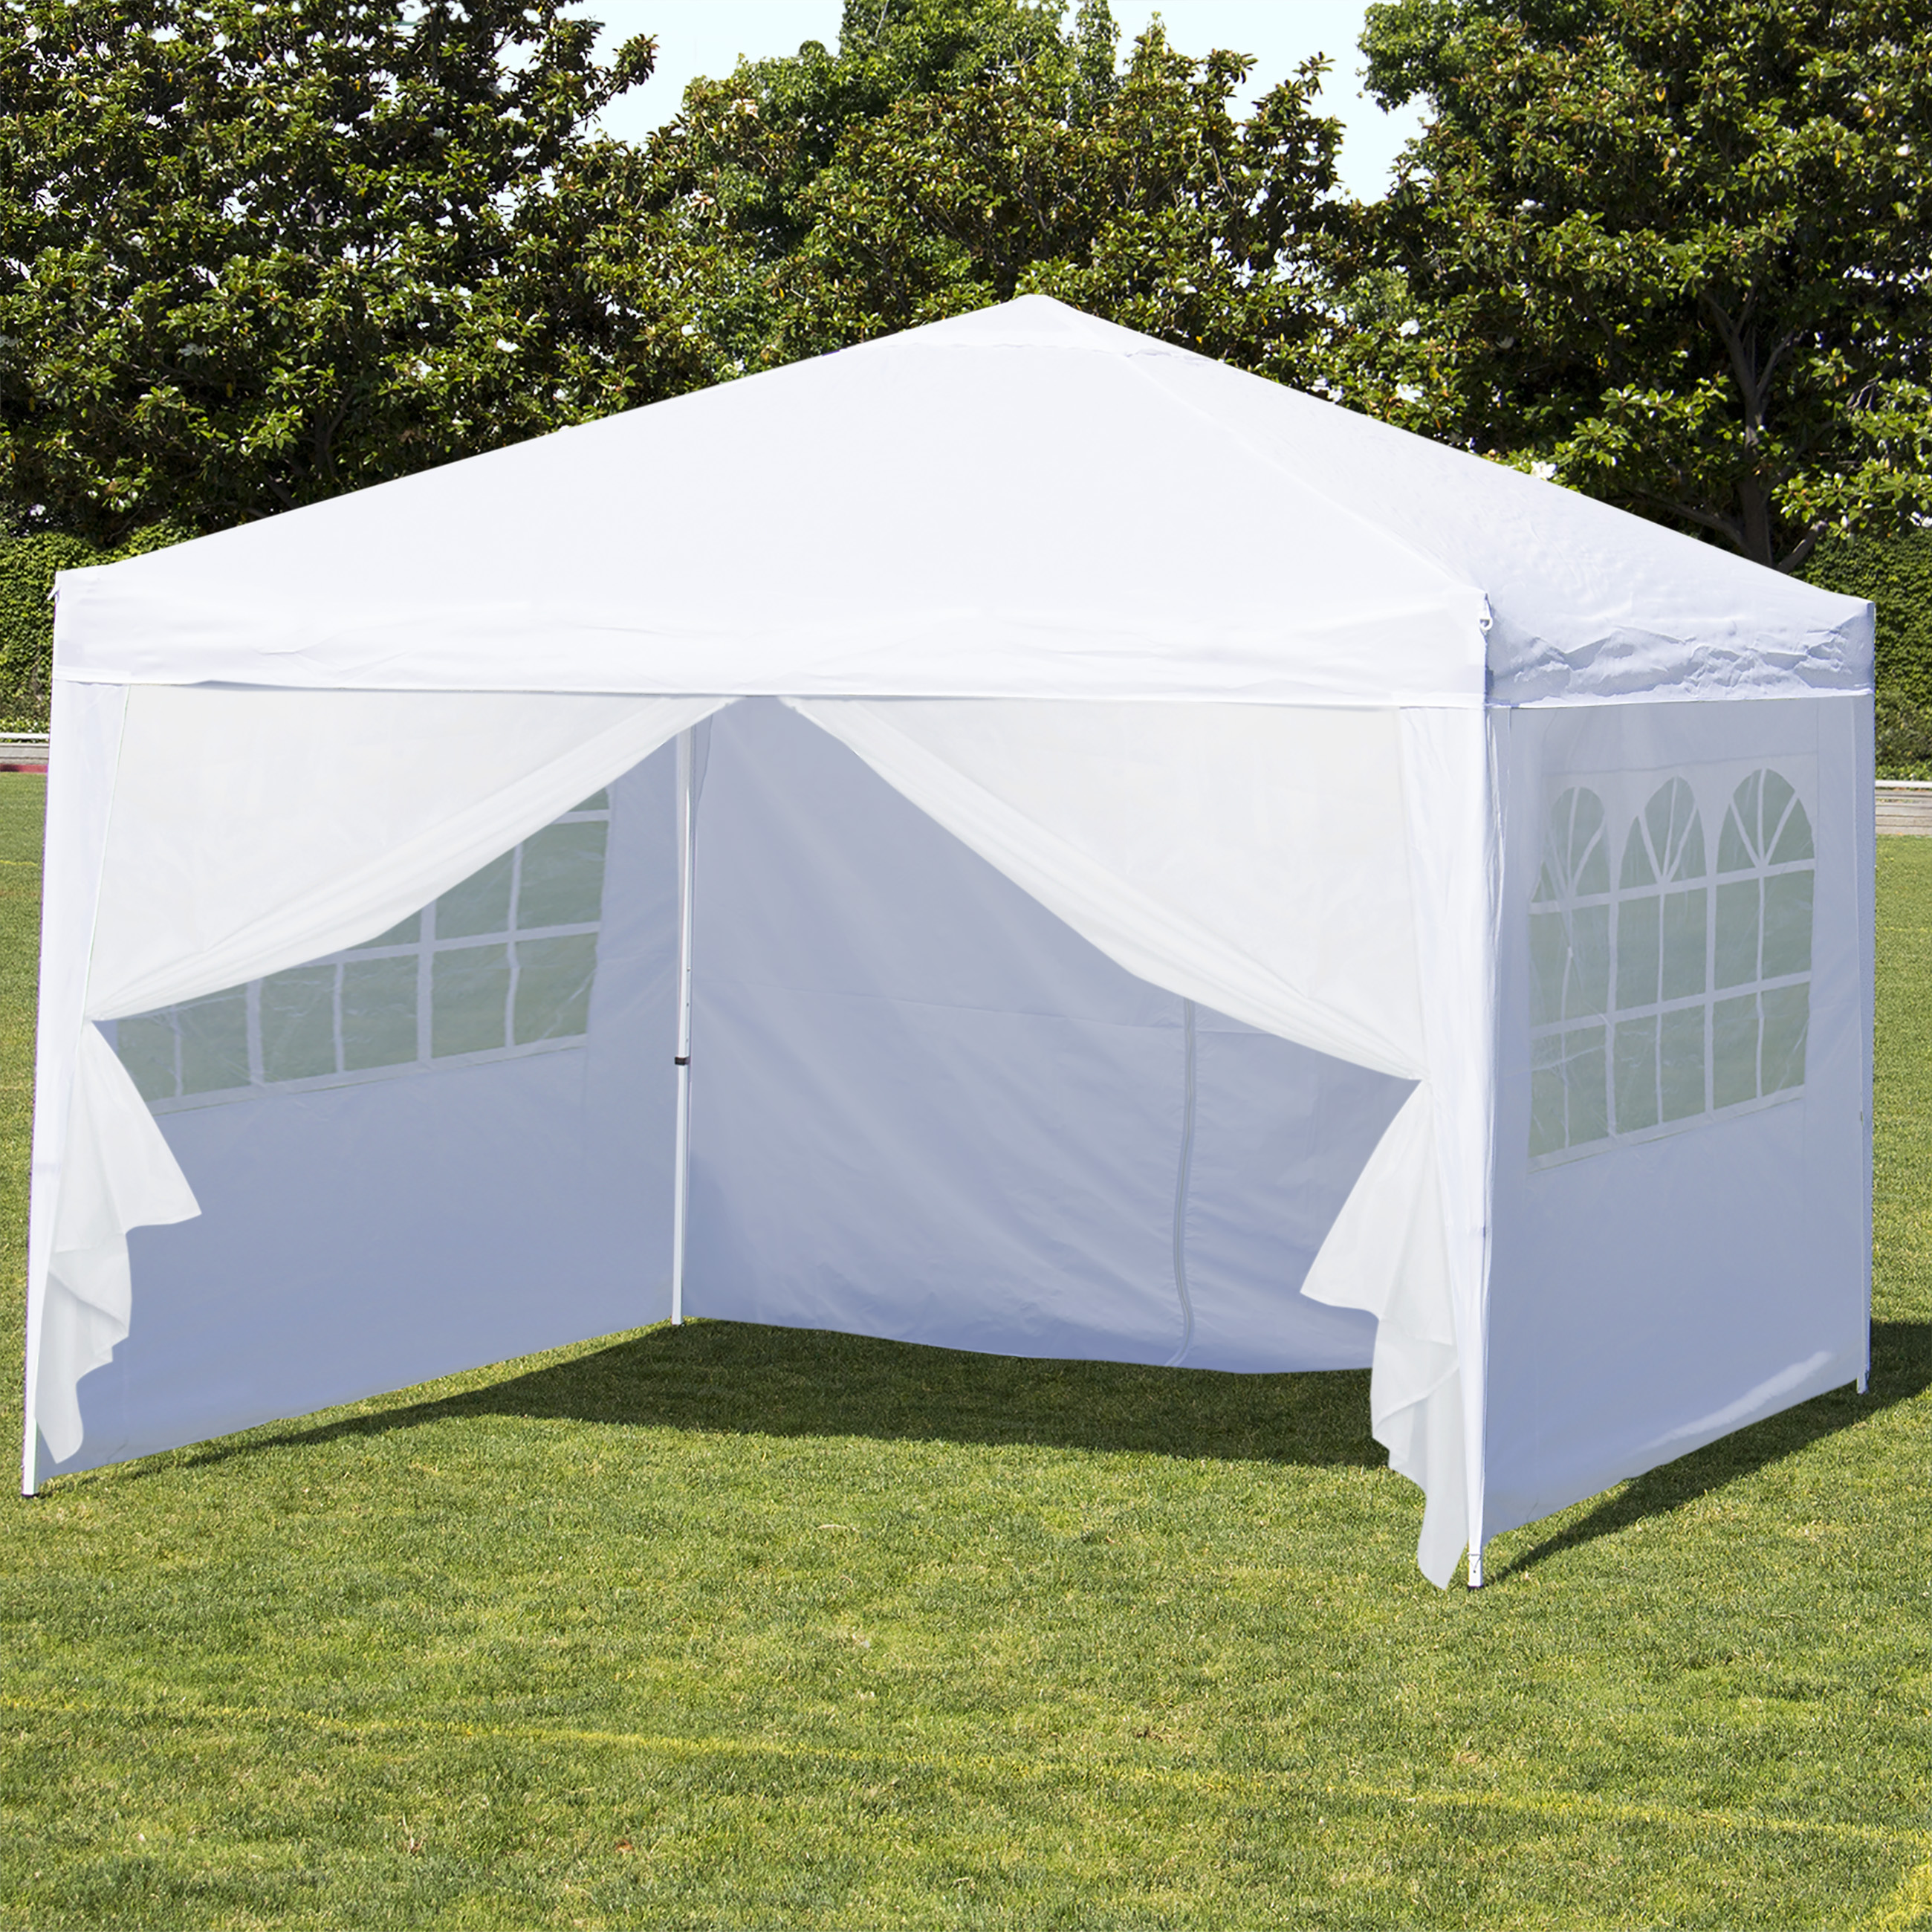 outdoor canopy tent best choice products 10x10ft portable lightweight pop up canopy tent w/ TXJKOZJ